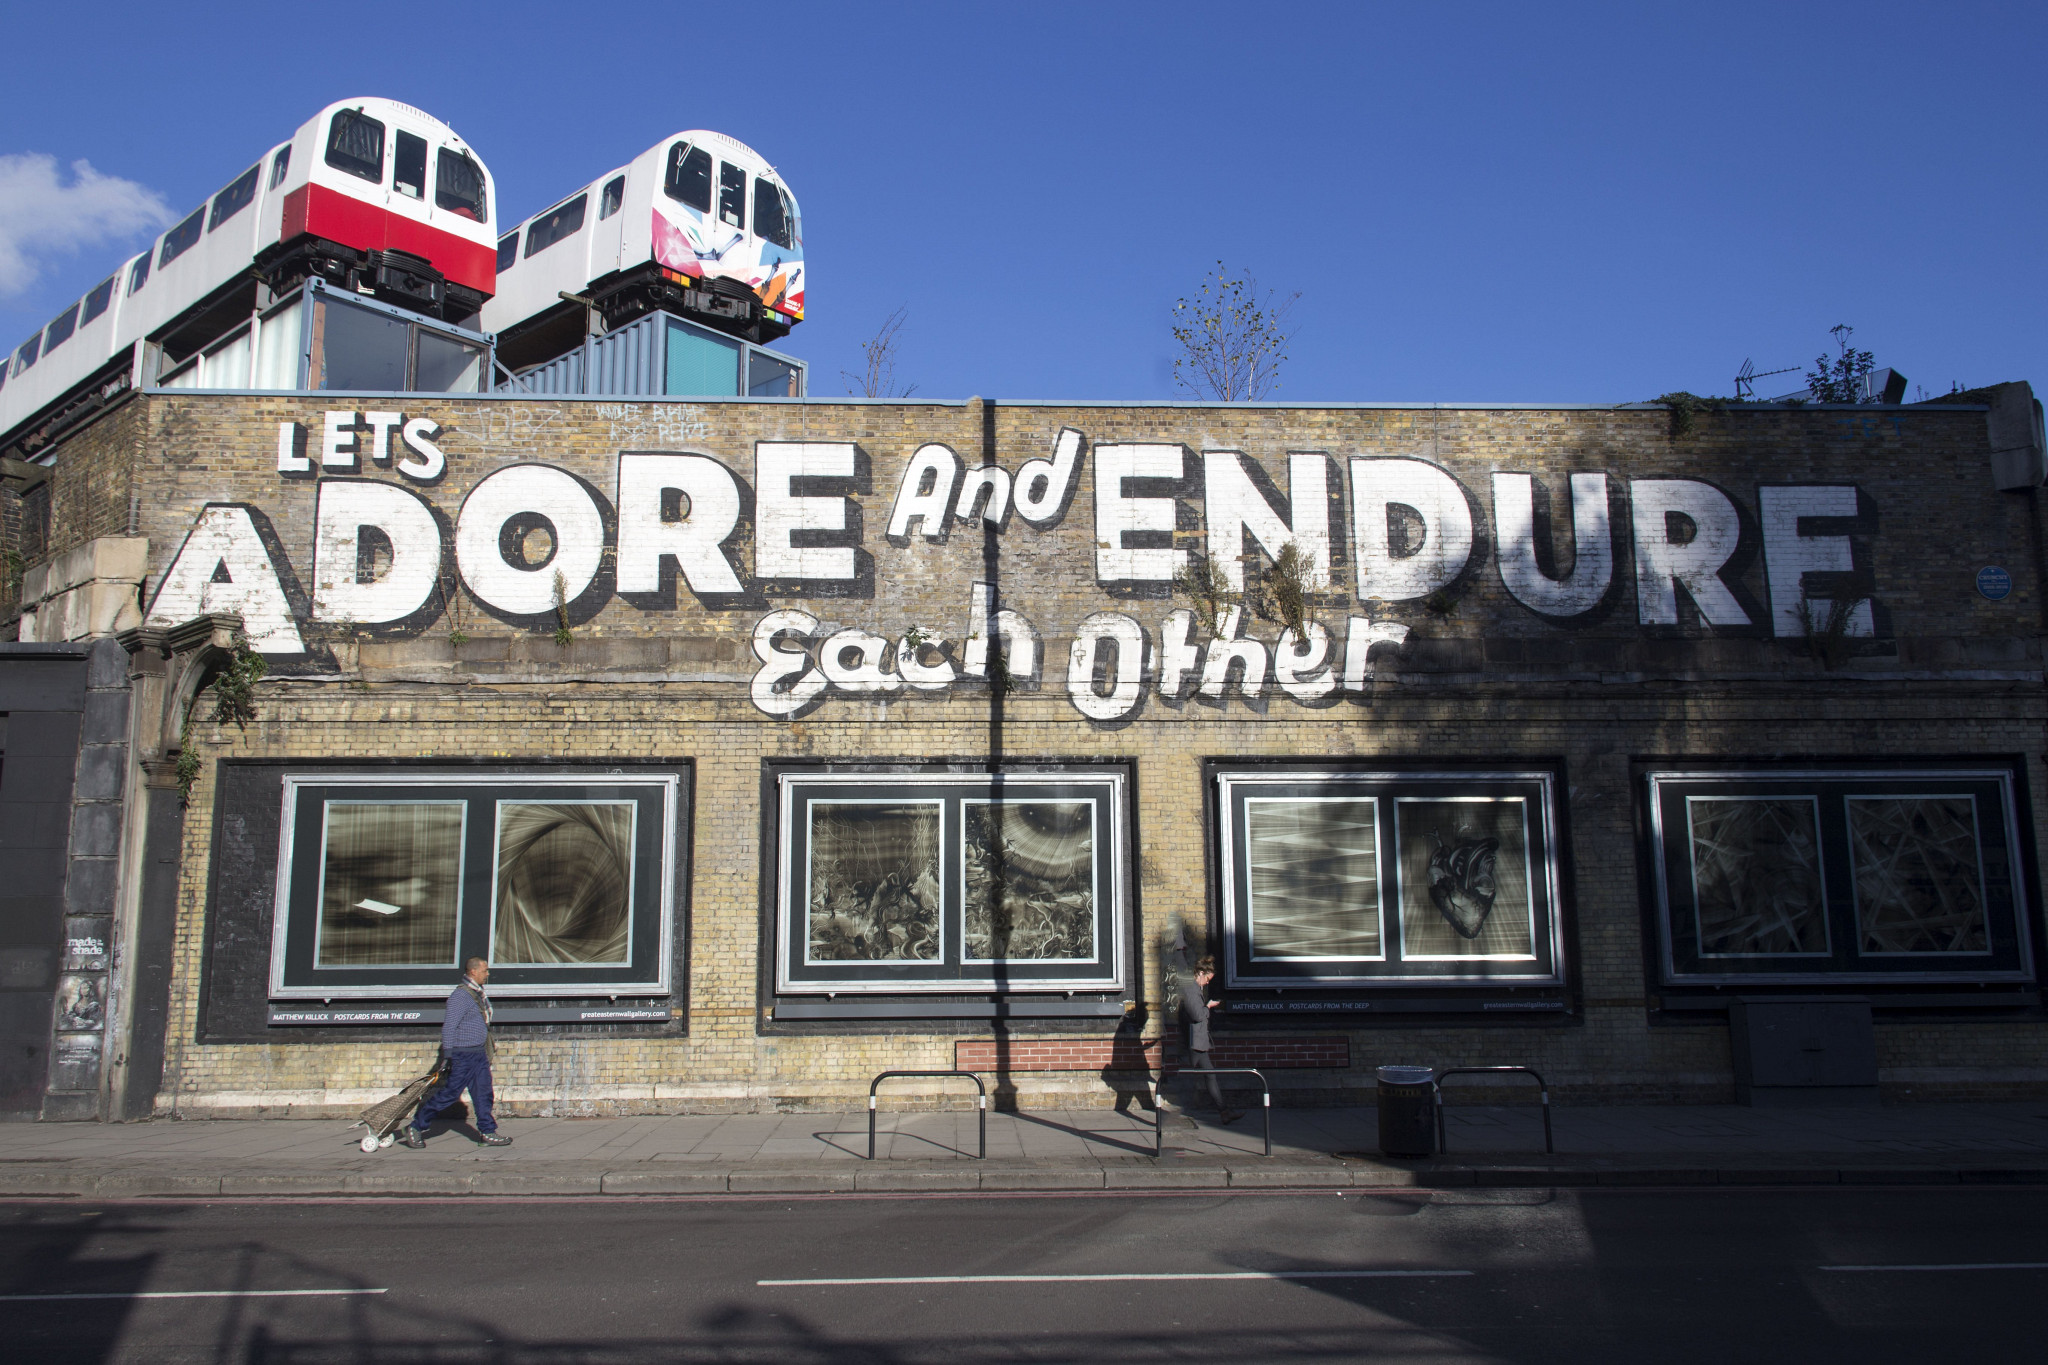 Adore and Endure